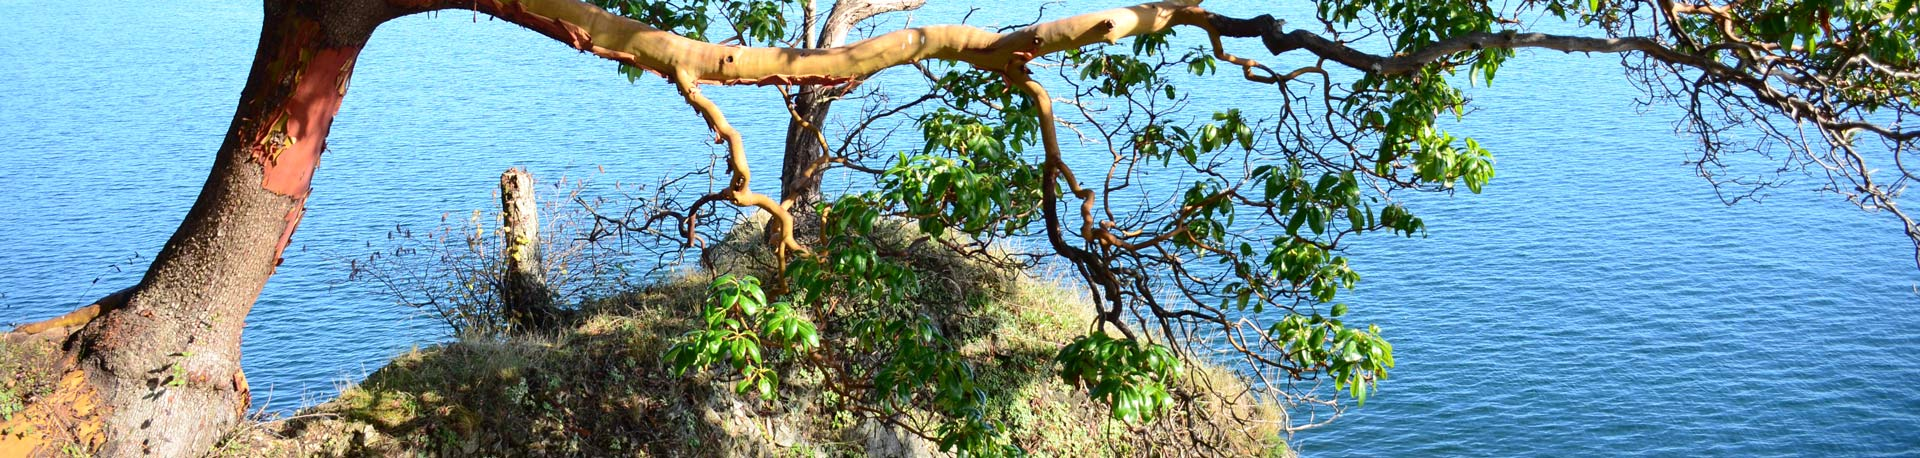 Arbutus tree stretched out over a rocky hillside with blue ocean in the background